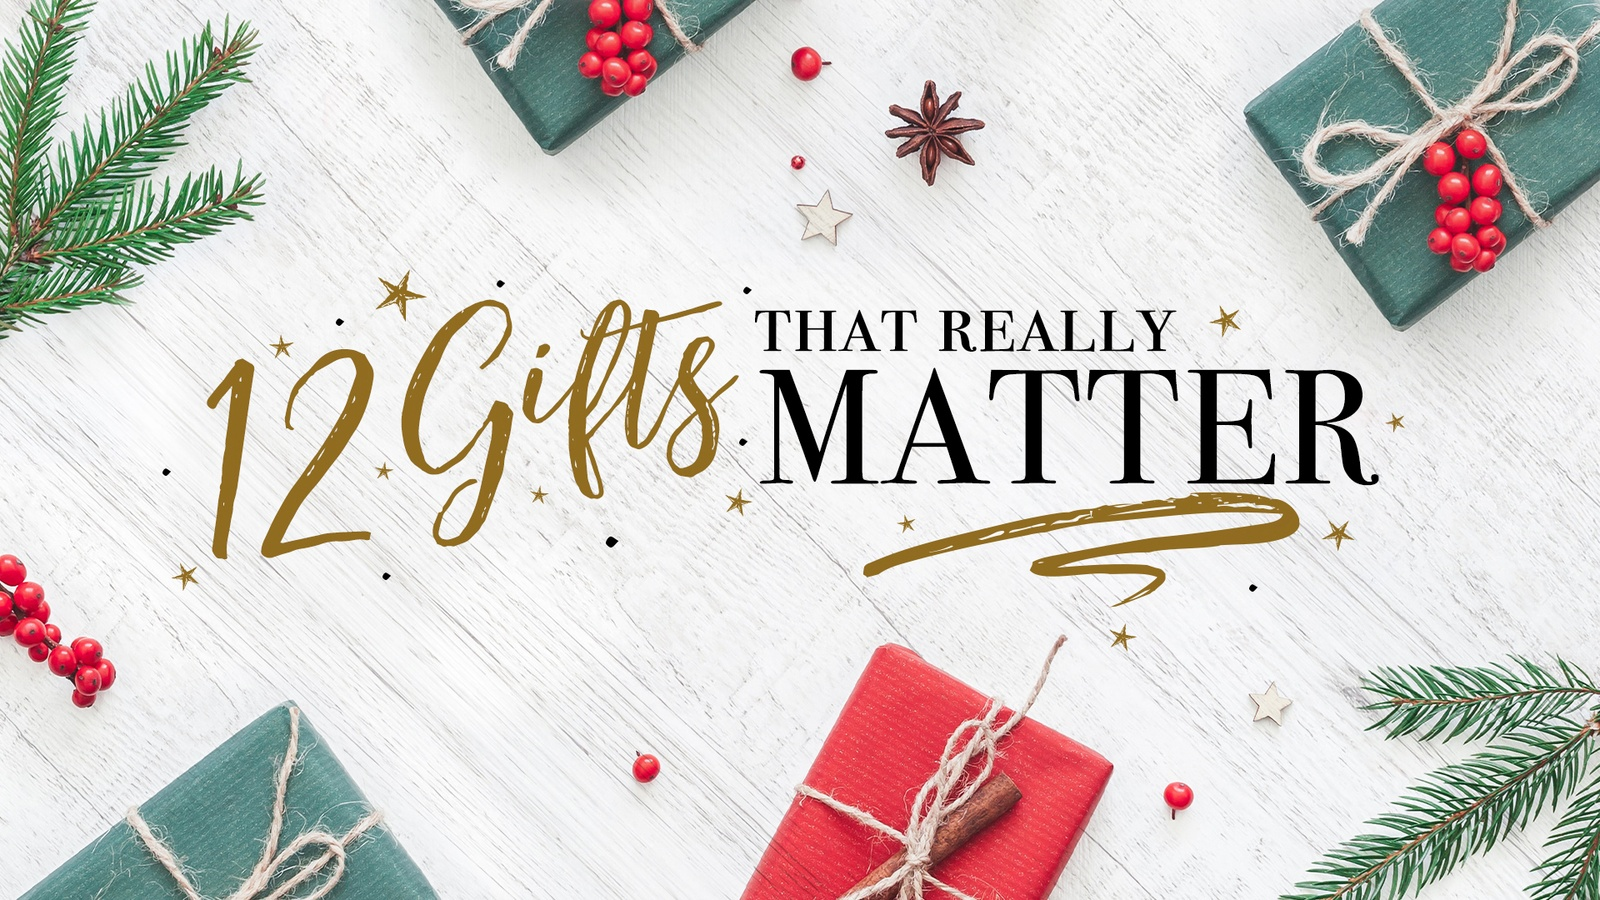 12 Gifts That Really Matter